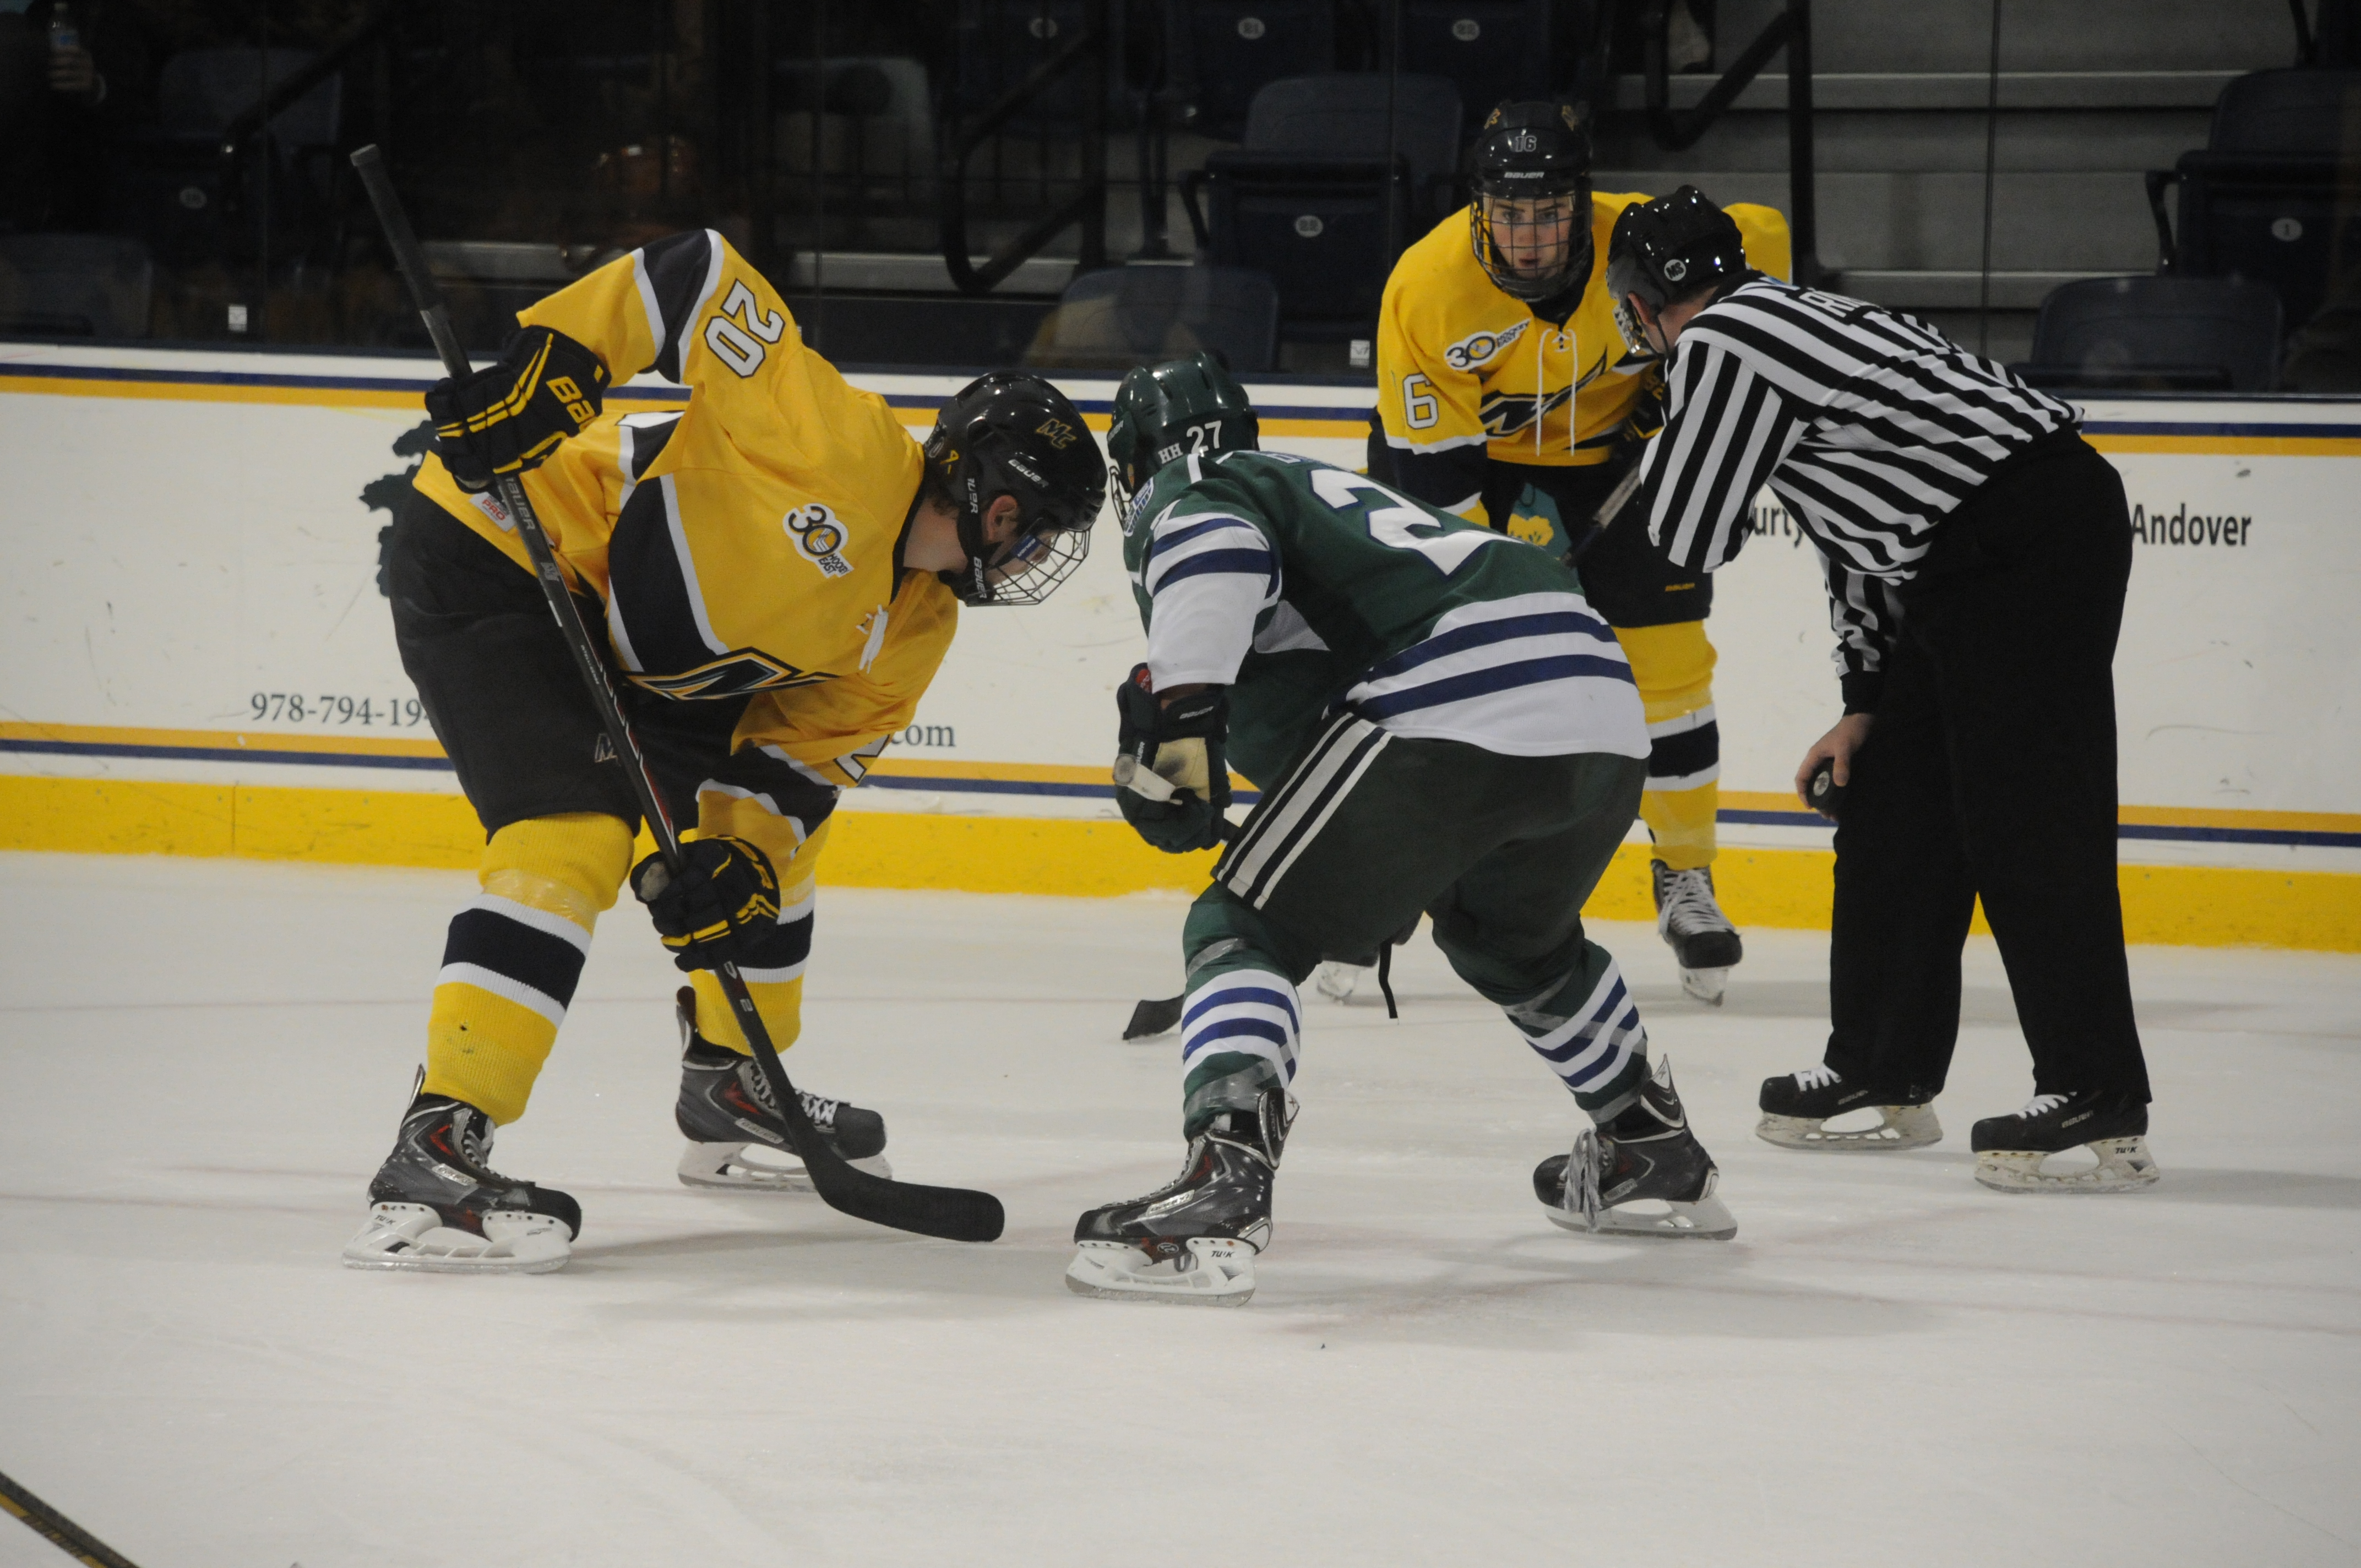 Freshman centerman Hampus Gustafsson prepares to take a faceoff against Mercyhurst as senior defenseman Thomas McCarthy looks on. Photo by Kelli Readey '16